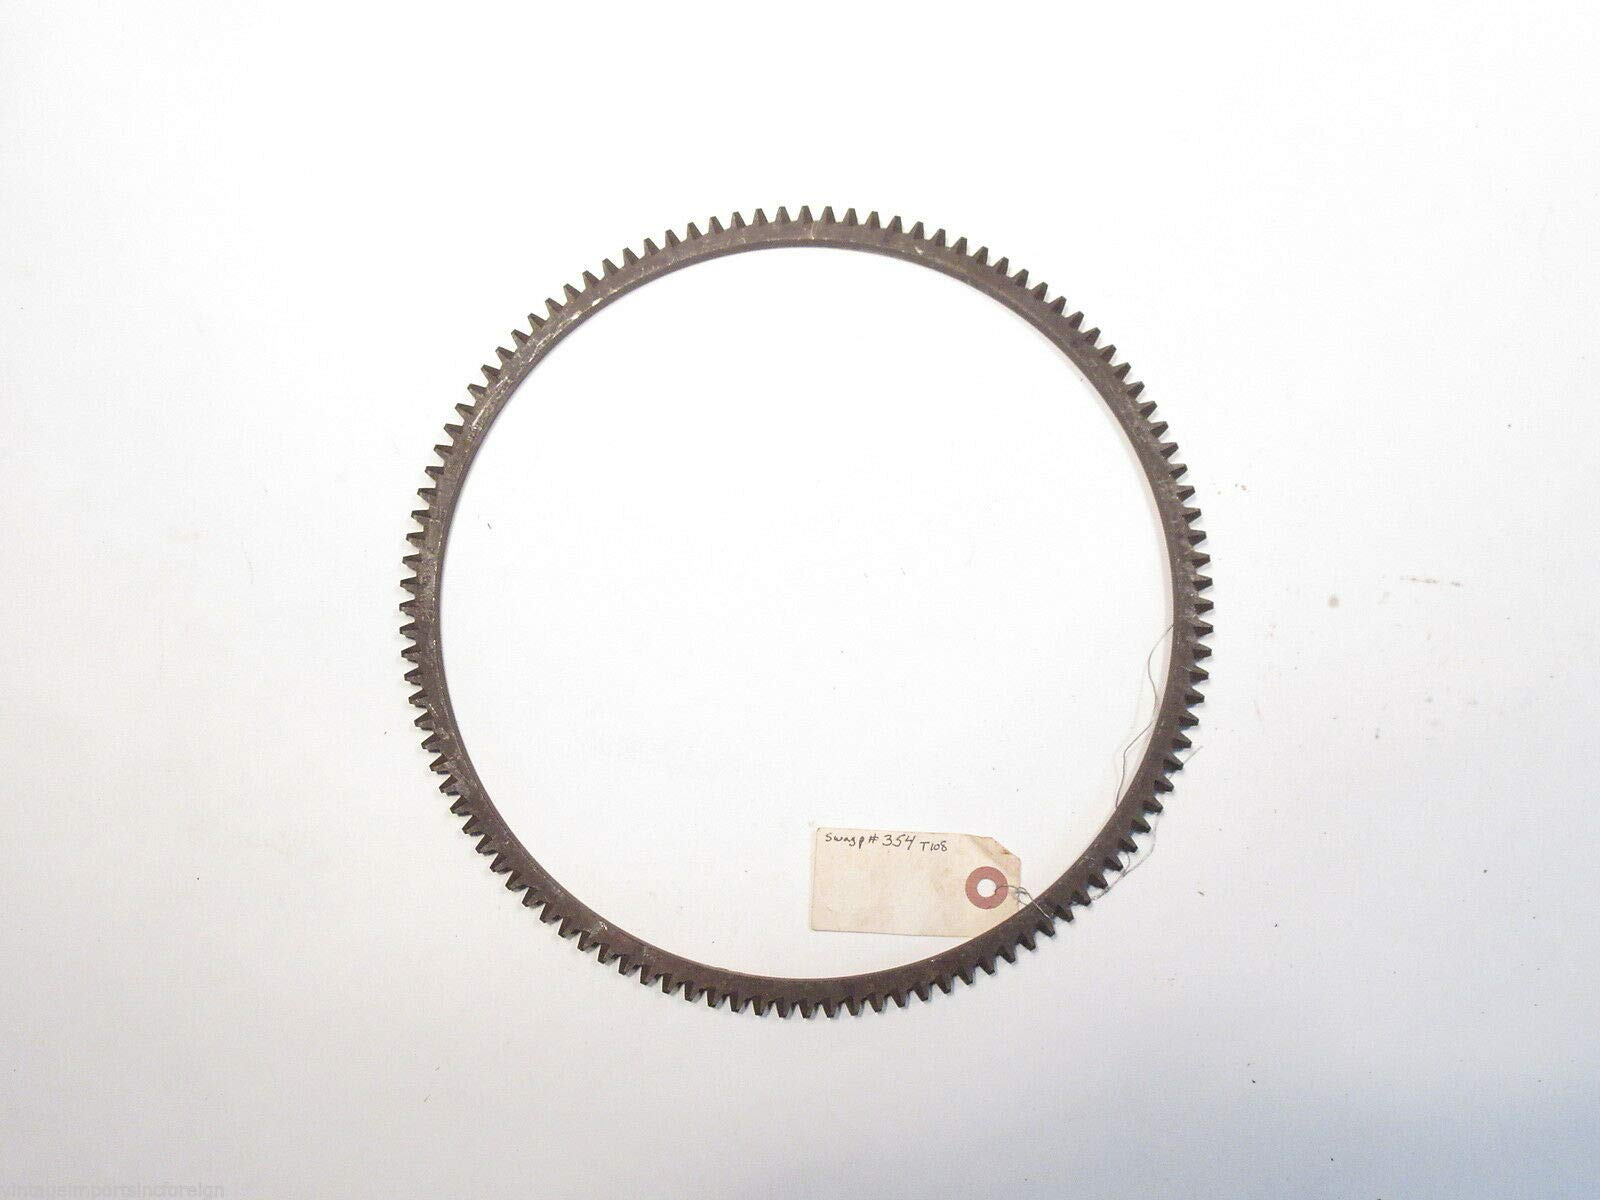 EPC Fiat 1500 Cabriolet & 1300 New 108 Tooth Ring Gear RG-S354